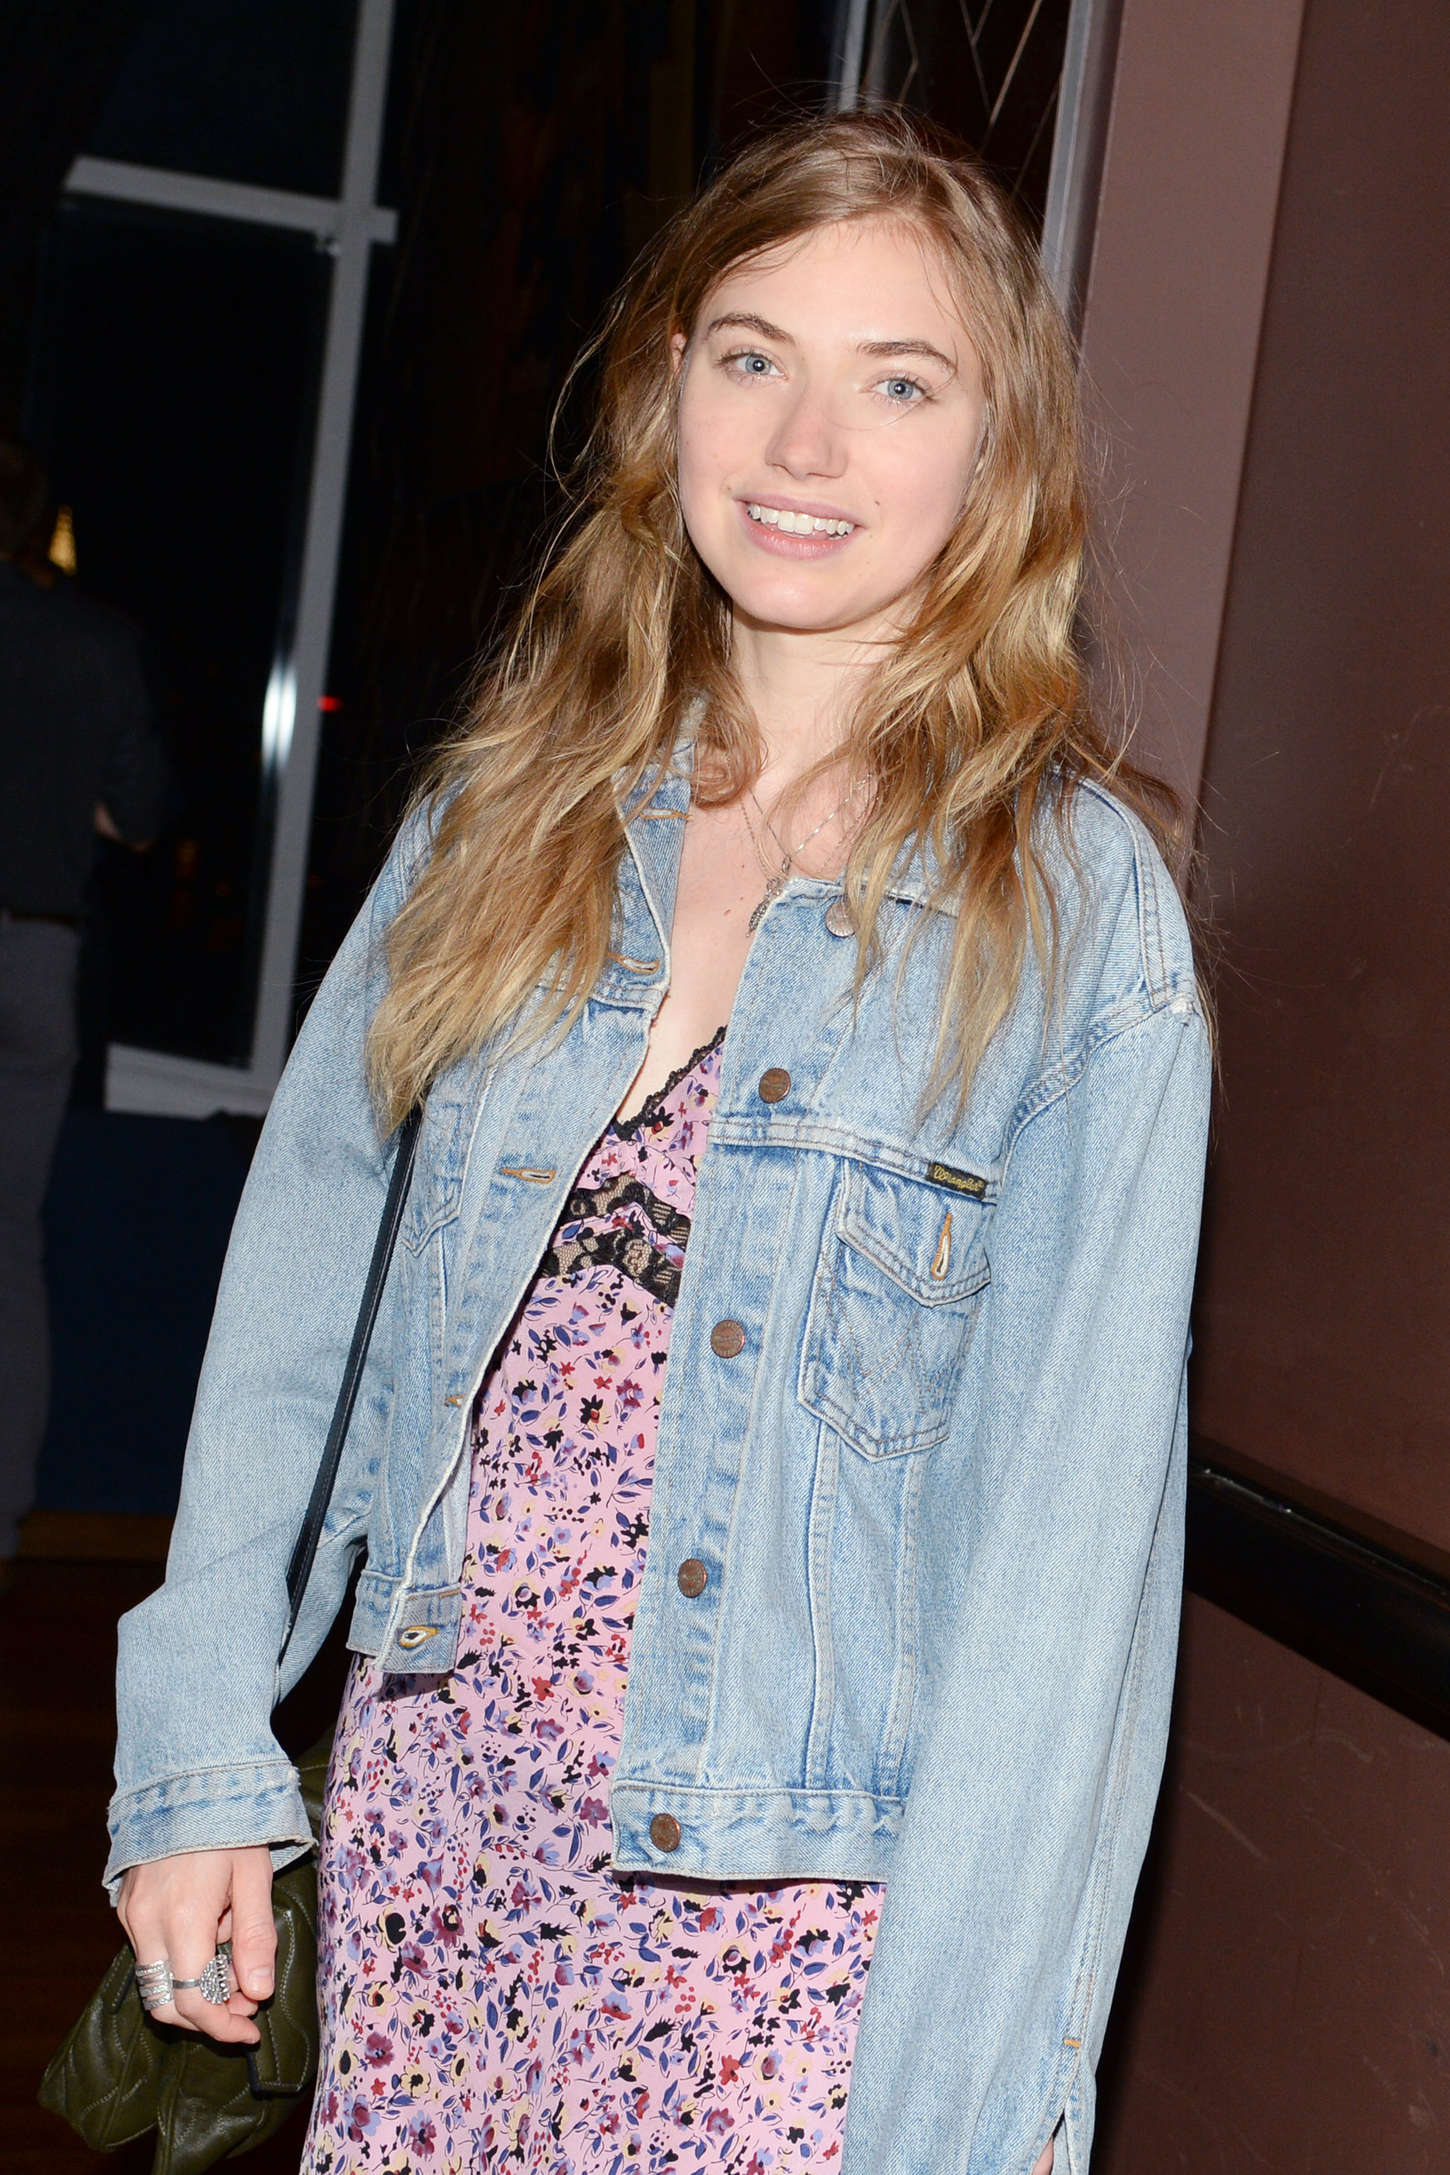 Imogen Poots The Diary of a Teenage Girl After Party in New York